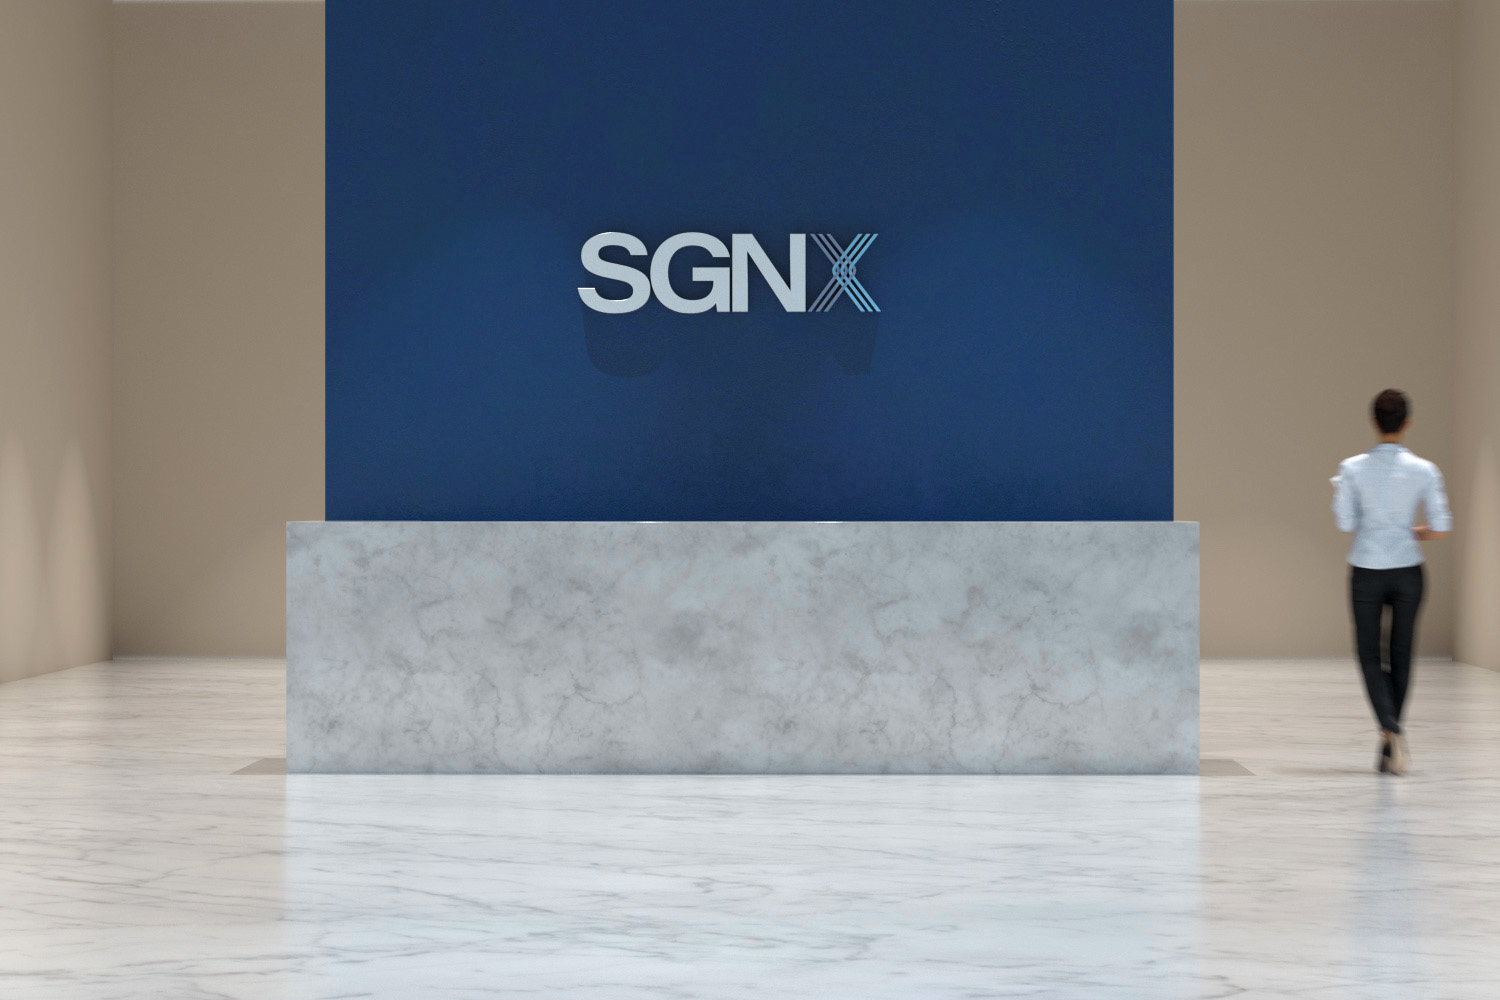 SGNX office entrance